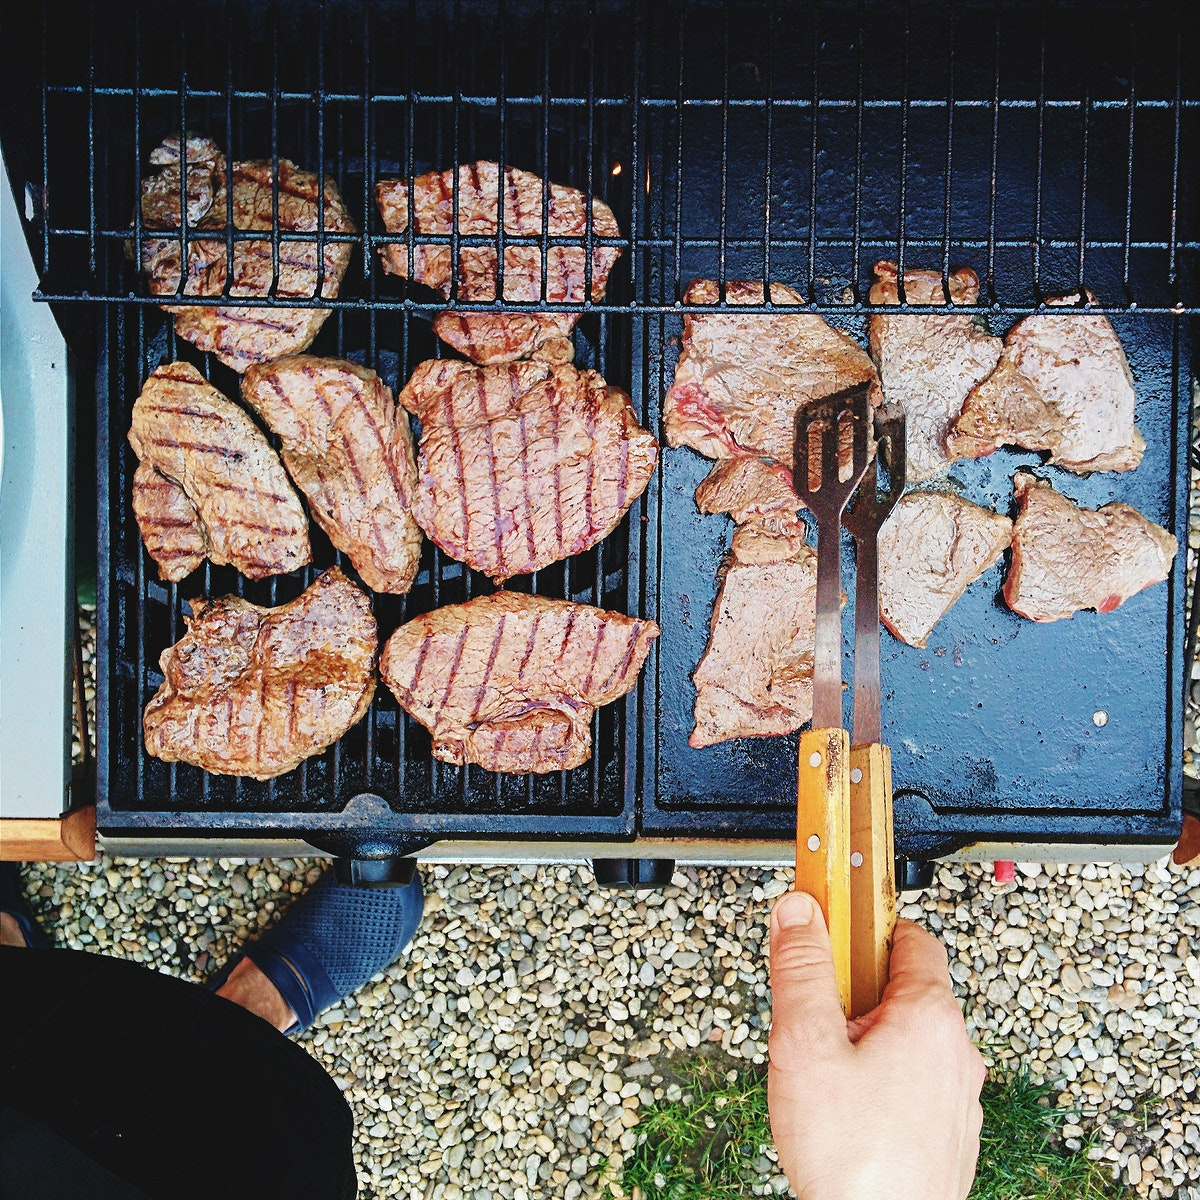 A pork steaks barbeque on a grill